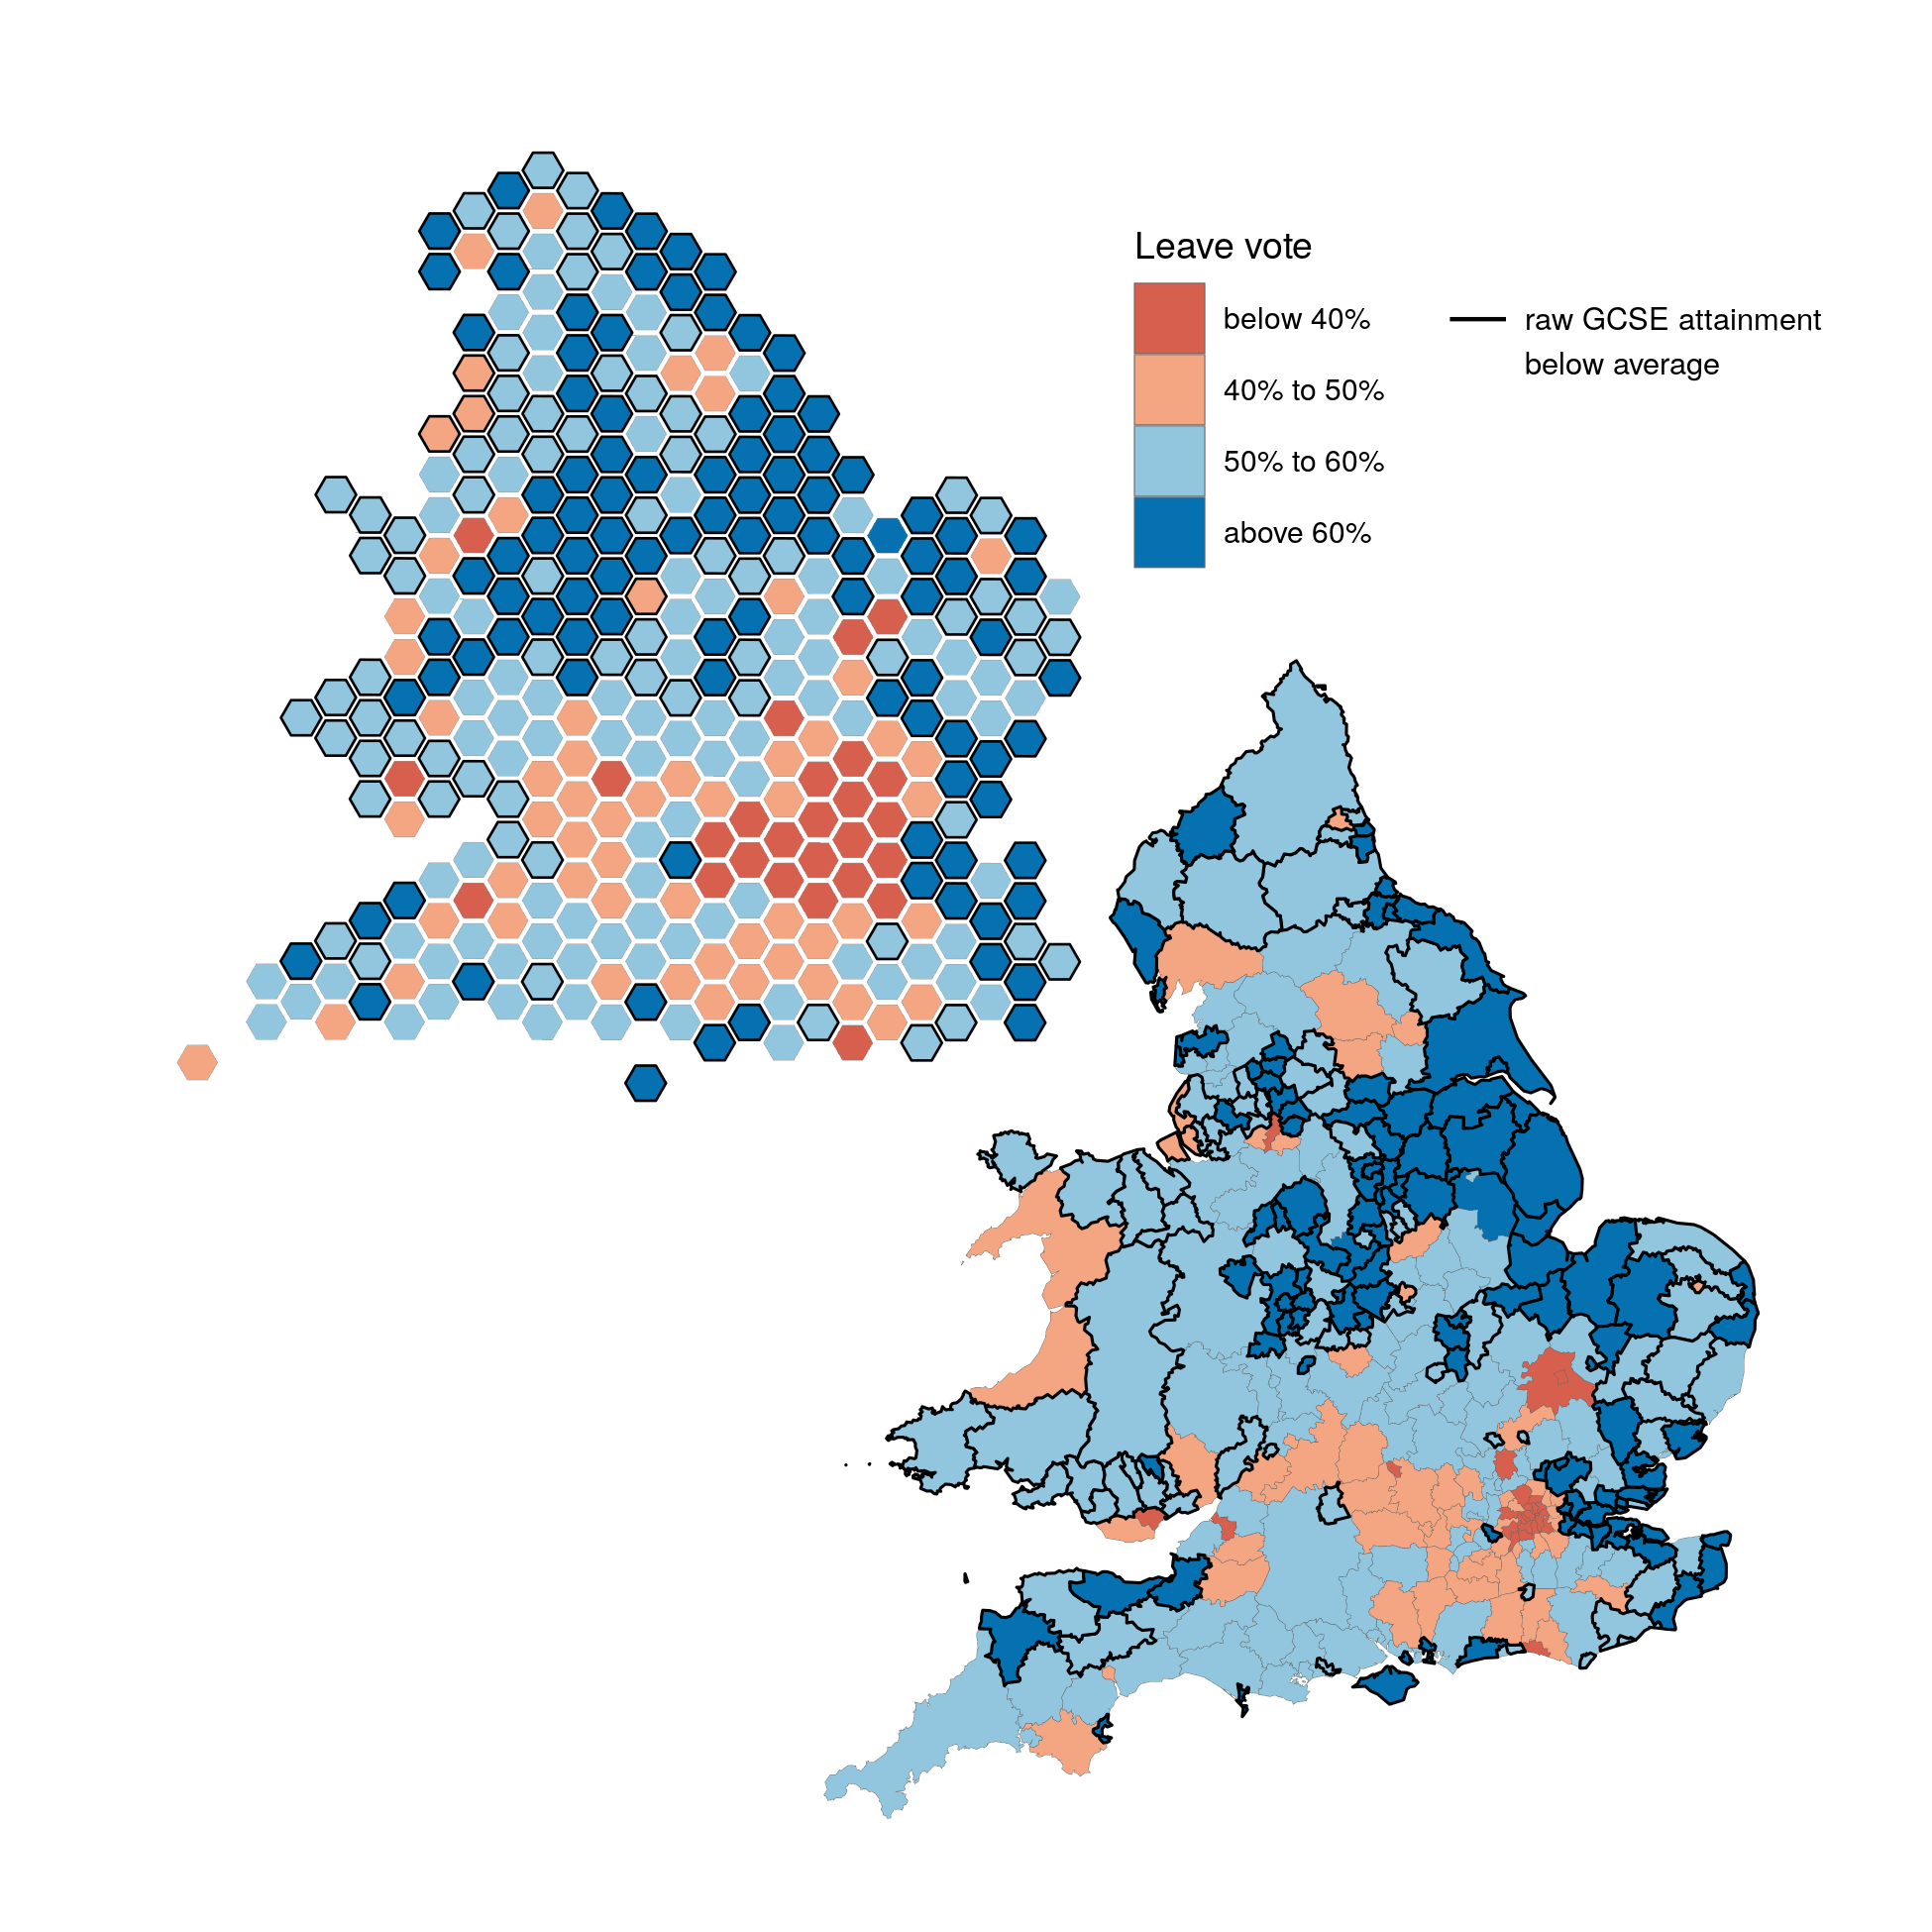 Map of Leave votes and educational attainment